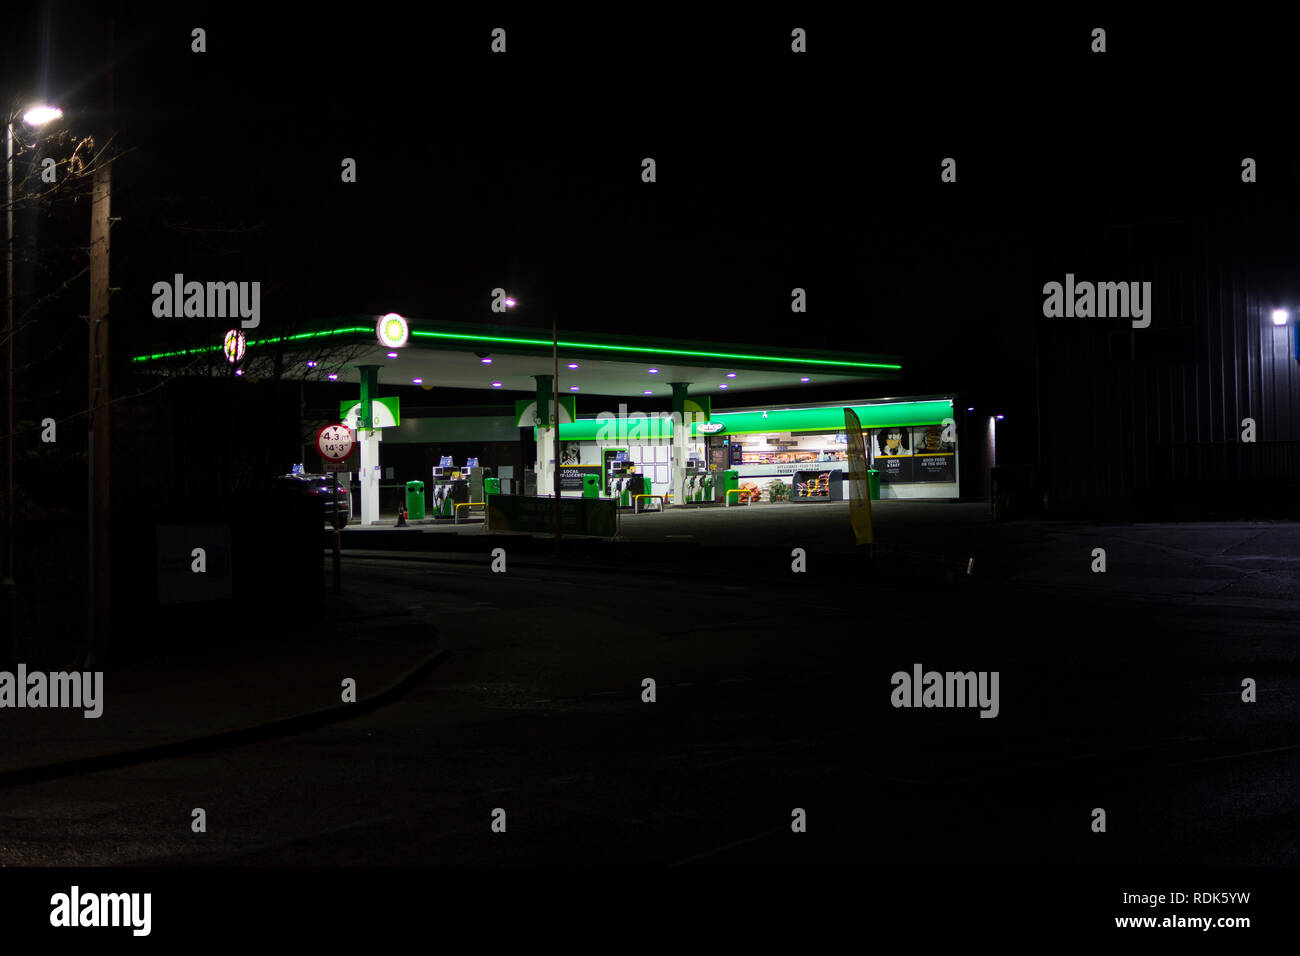 Petrol and service station at night Stock Photo